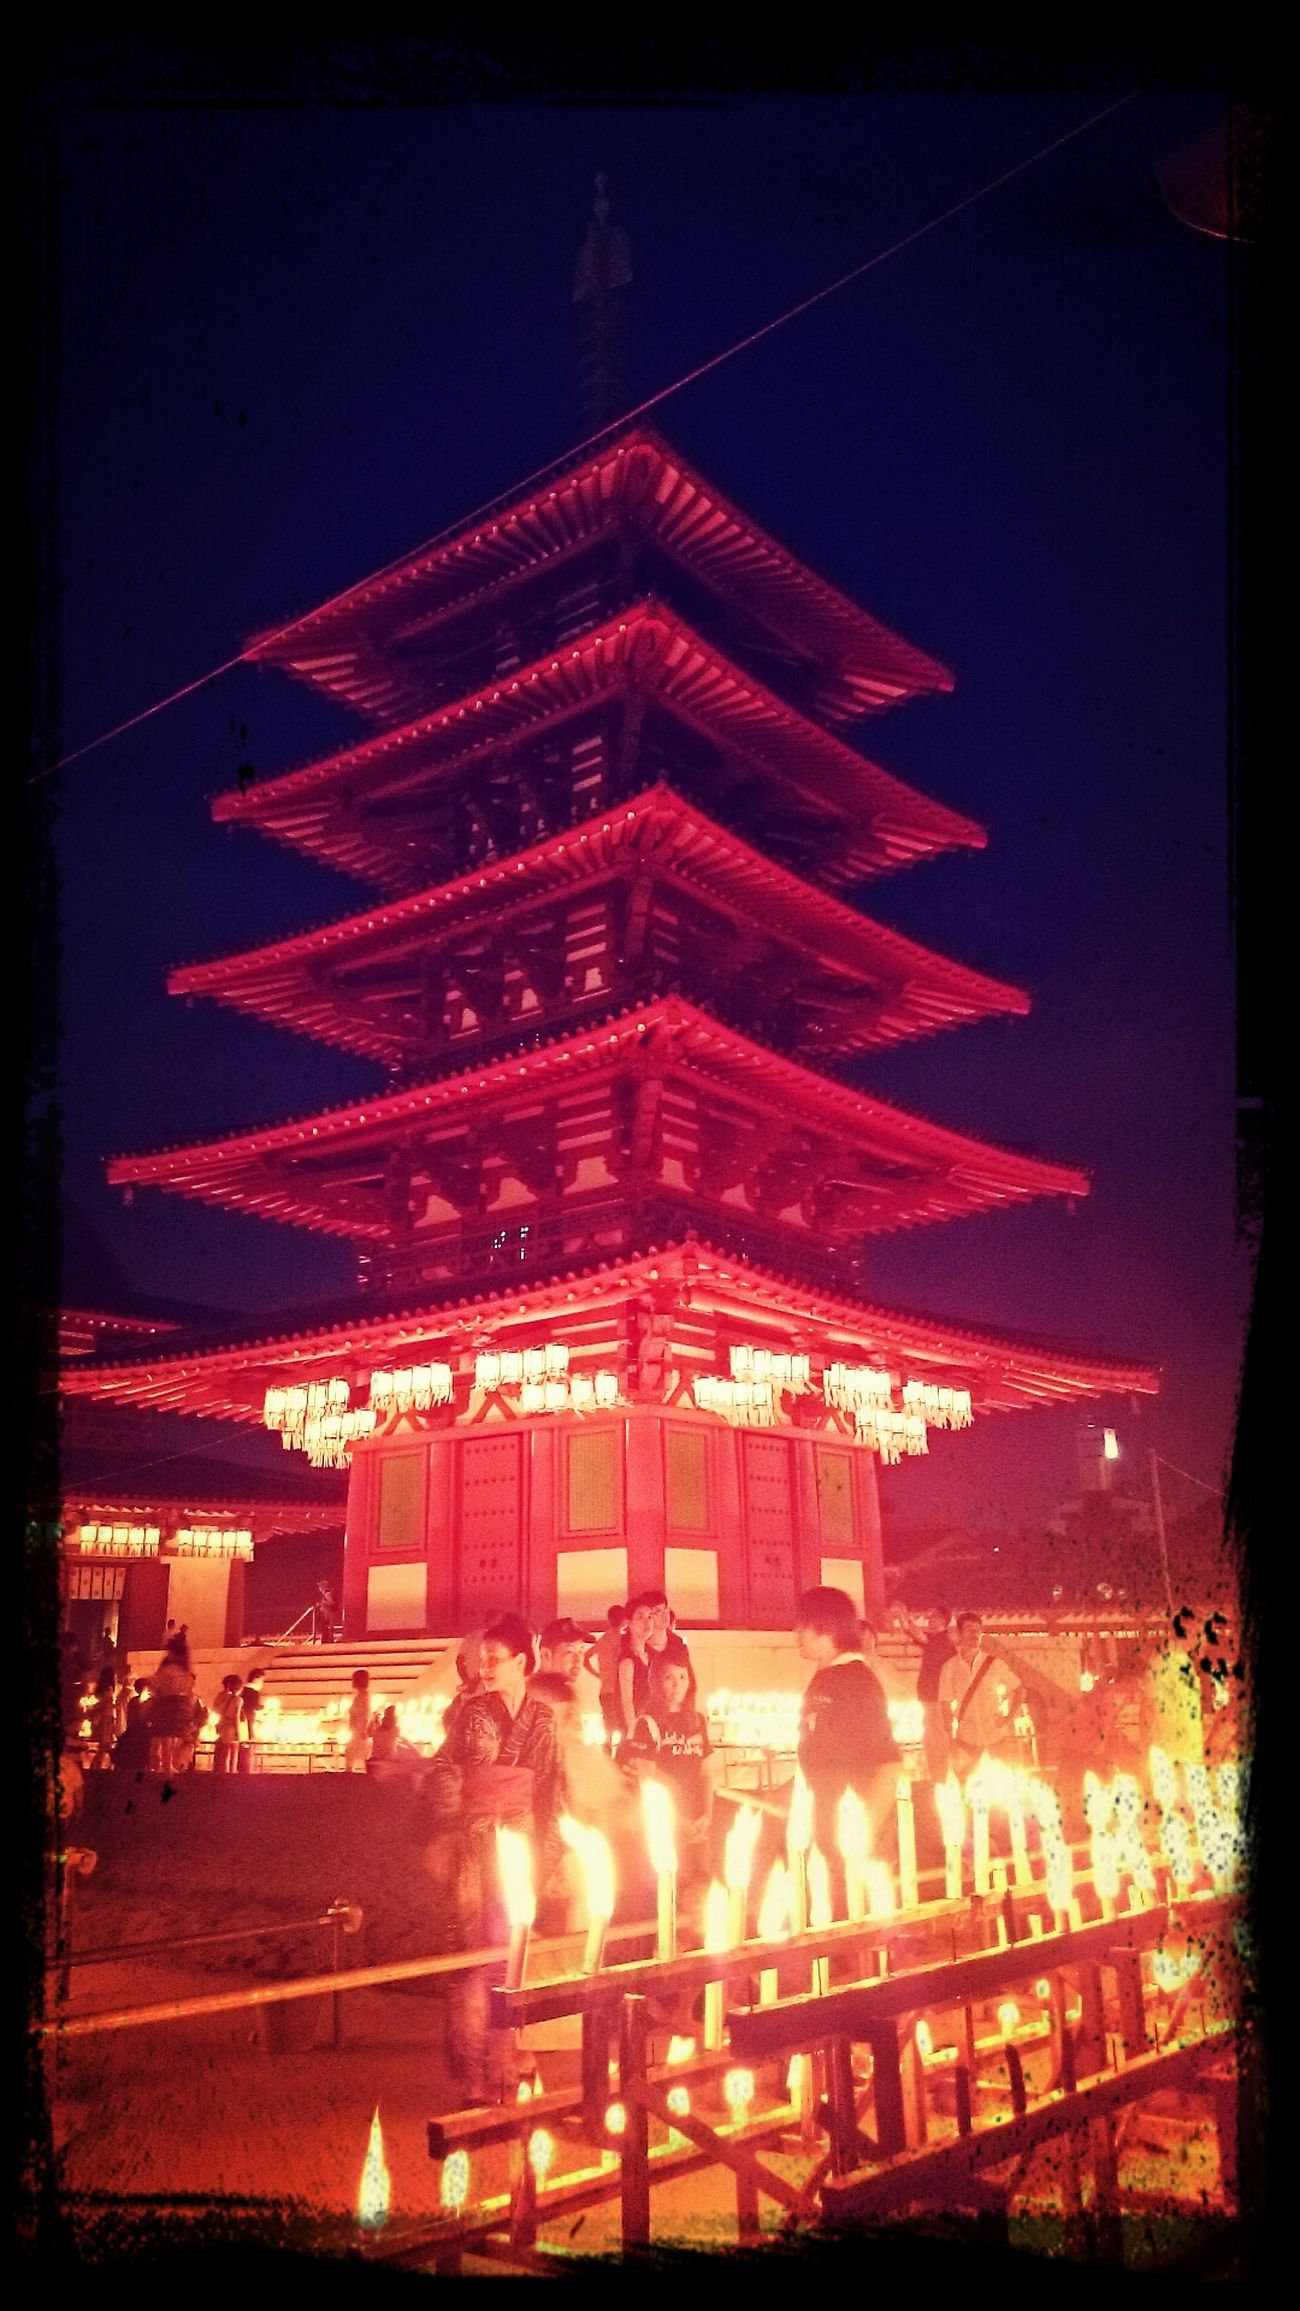 万灯供養法要。 Scorchingheat Five-storied Pagoda Red Light Candle